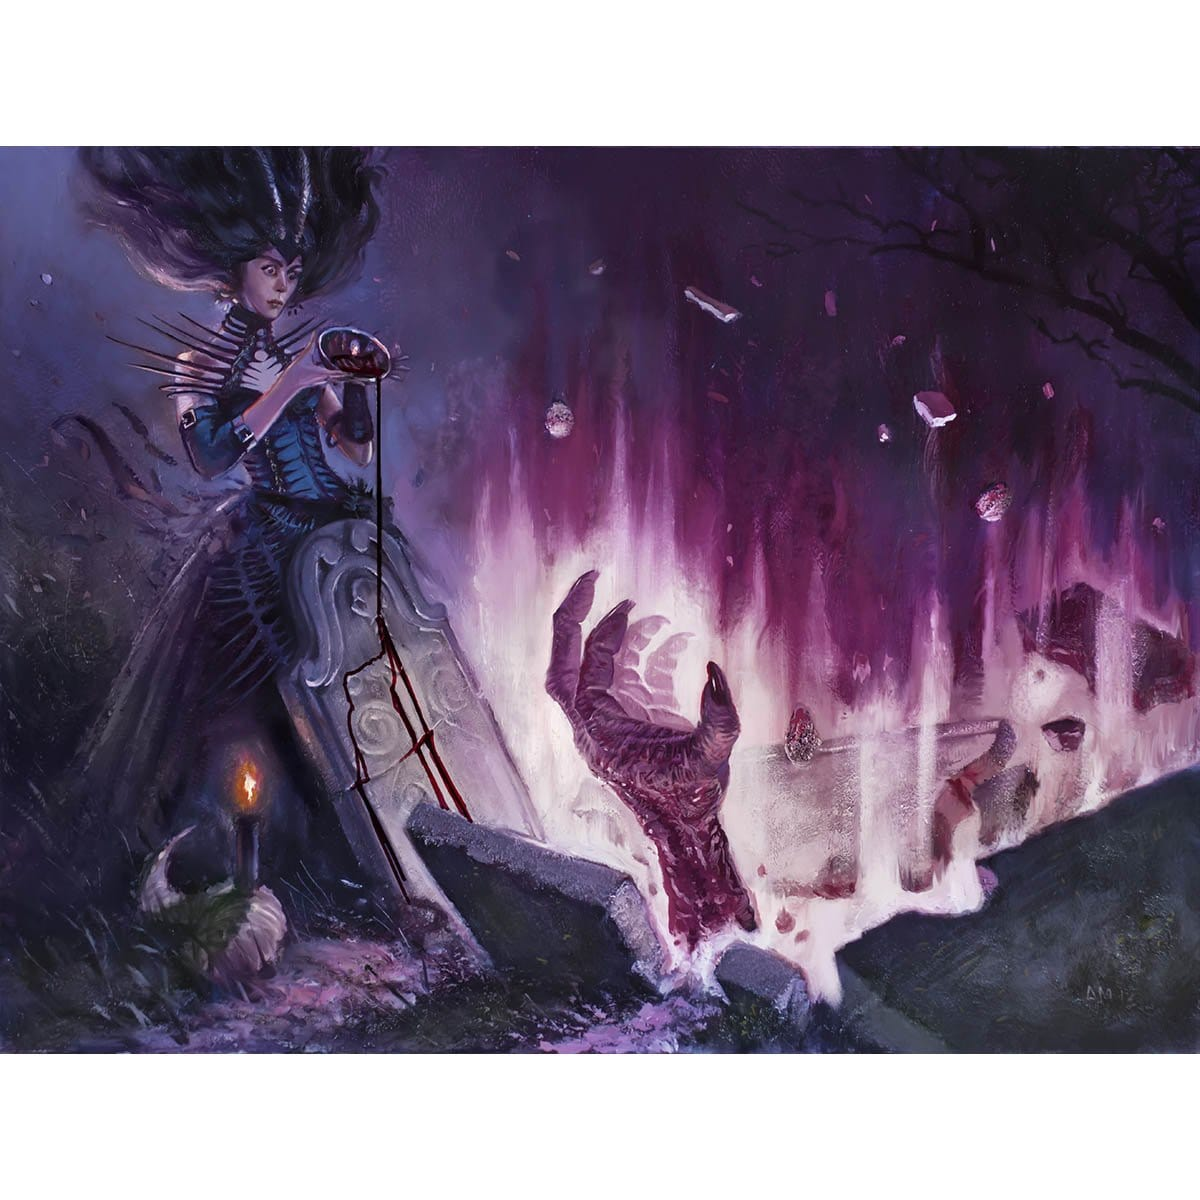 Unmake the Graves Print - Print - Original Magic Art - Accessories for Magic the Gathering and other card games